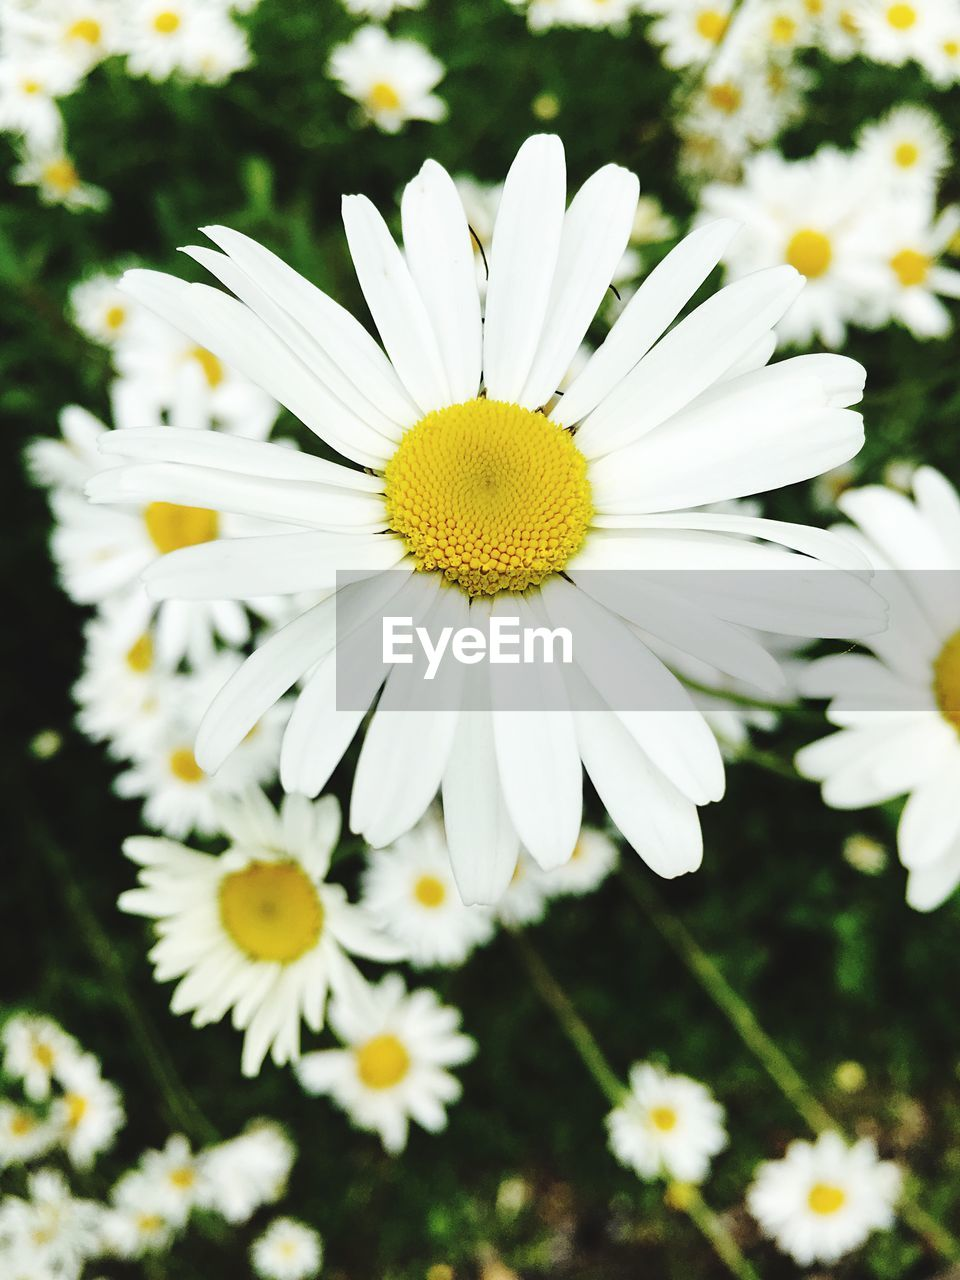 flower, petal, fragility, nature, flower head, yellow, growth, beauty in nature, white color, freshness, plant, blooming, pollen, no people, outdoors, day, close-up